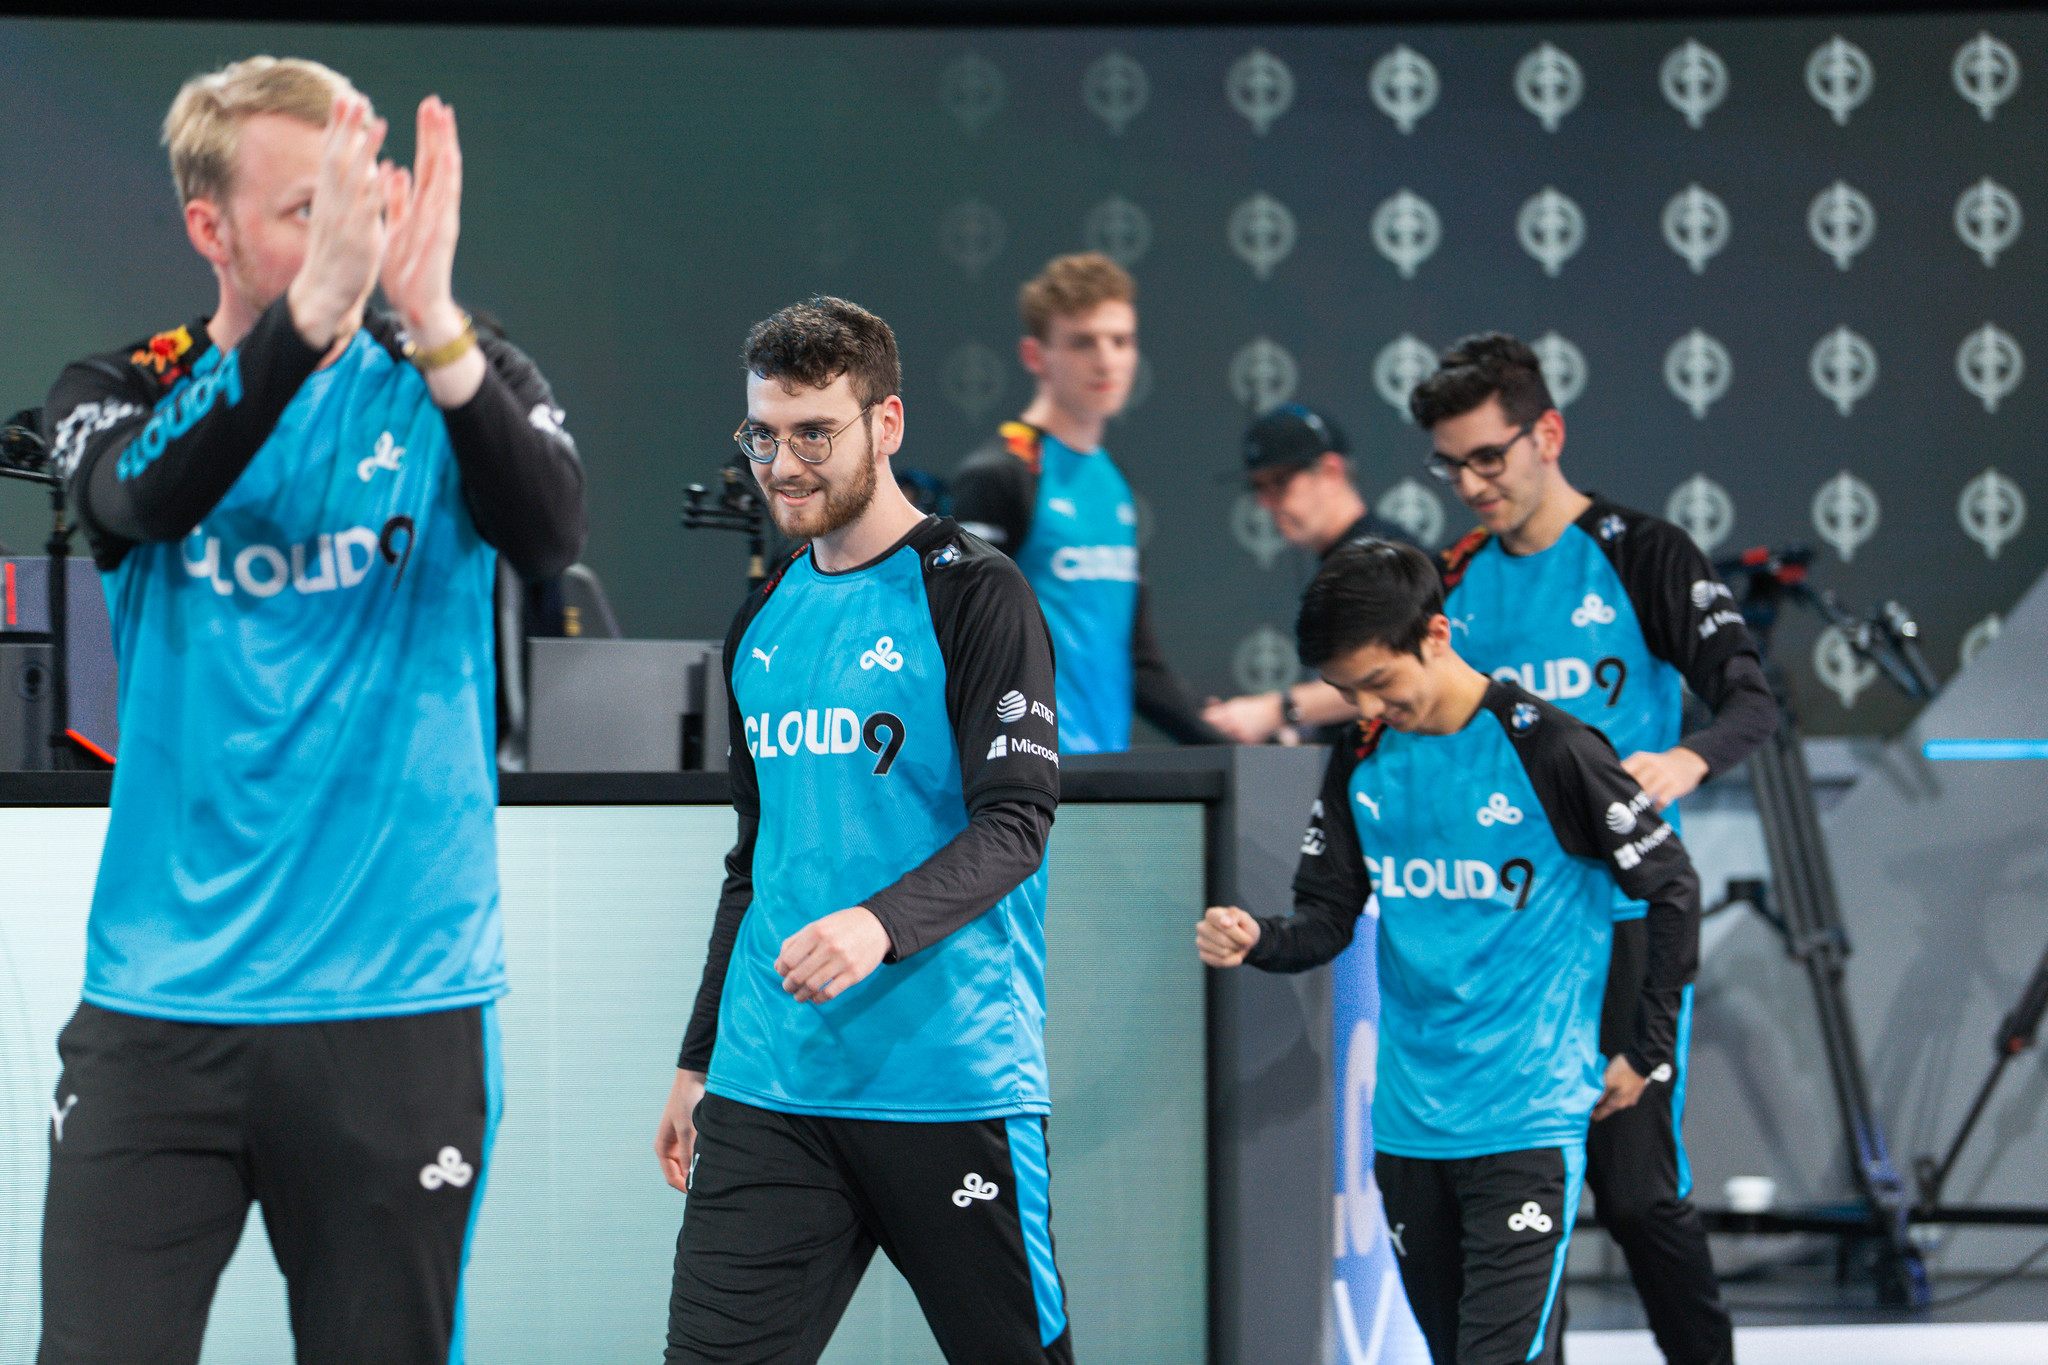 Cloud9's entire starting lineup named to 2020 LCS Spring Split All-Pro first team